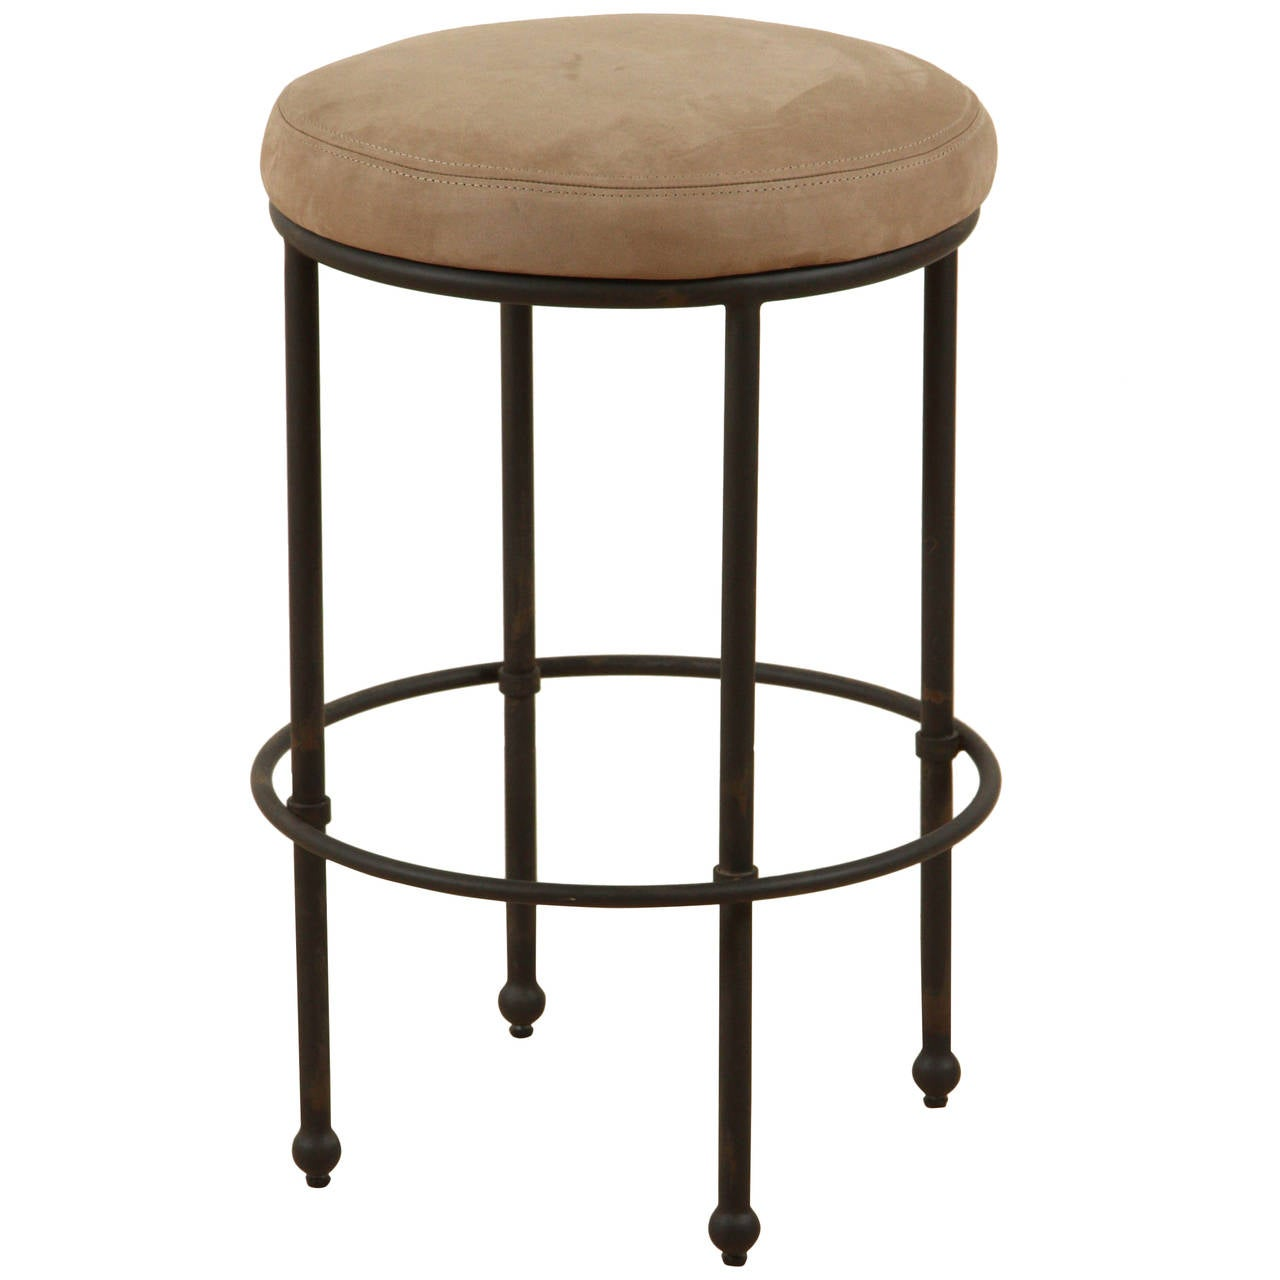 Orsini Counterstool in Nubuck and Blackned Steel by Lawson-Fenning For Sale